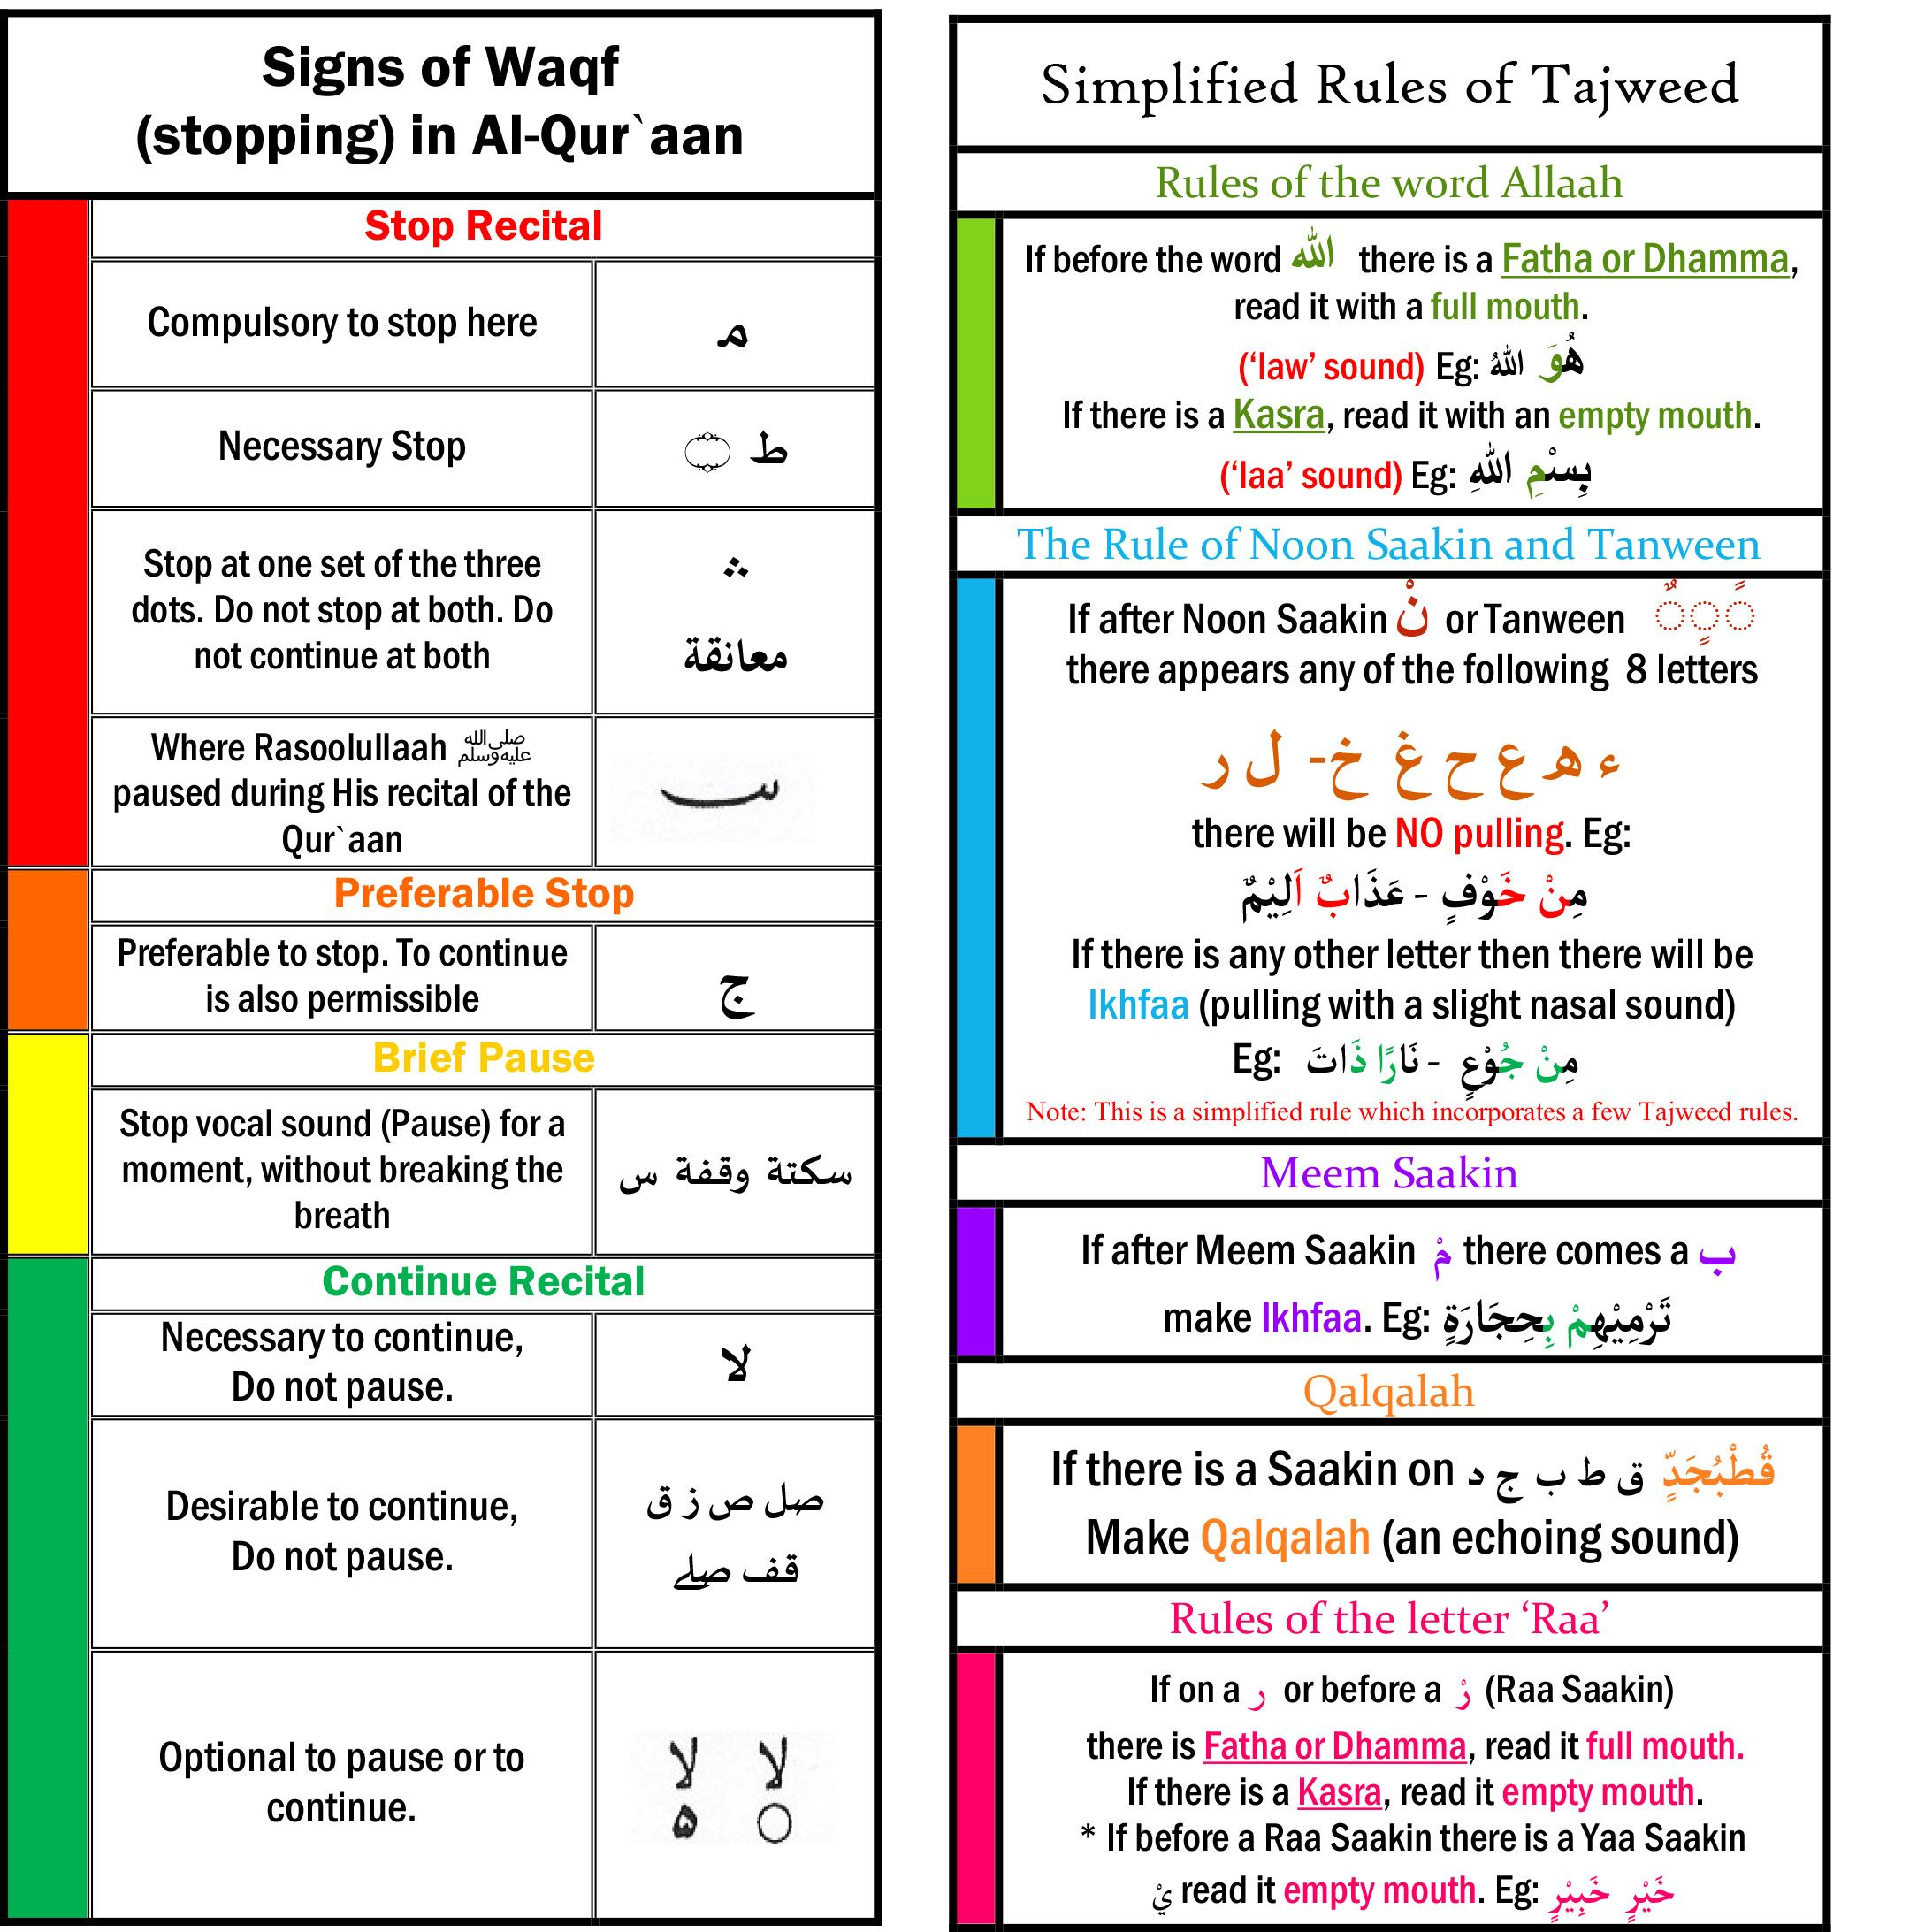 Signs Of Waqf And Simplified Tajweed Rules Lakefield